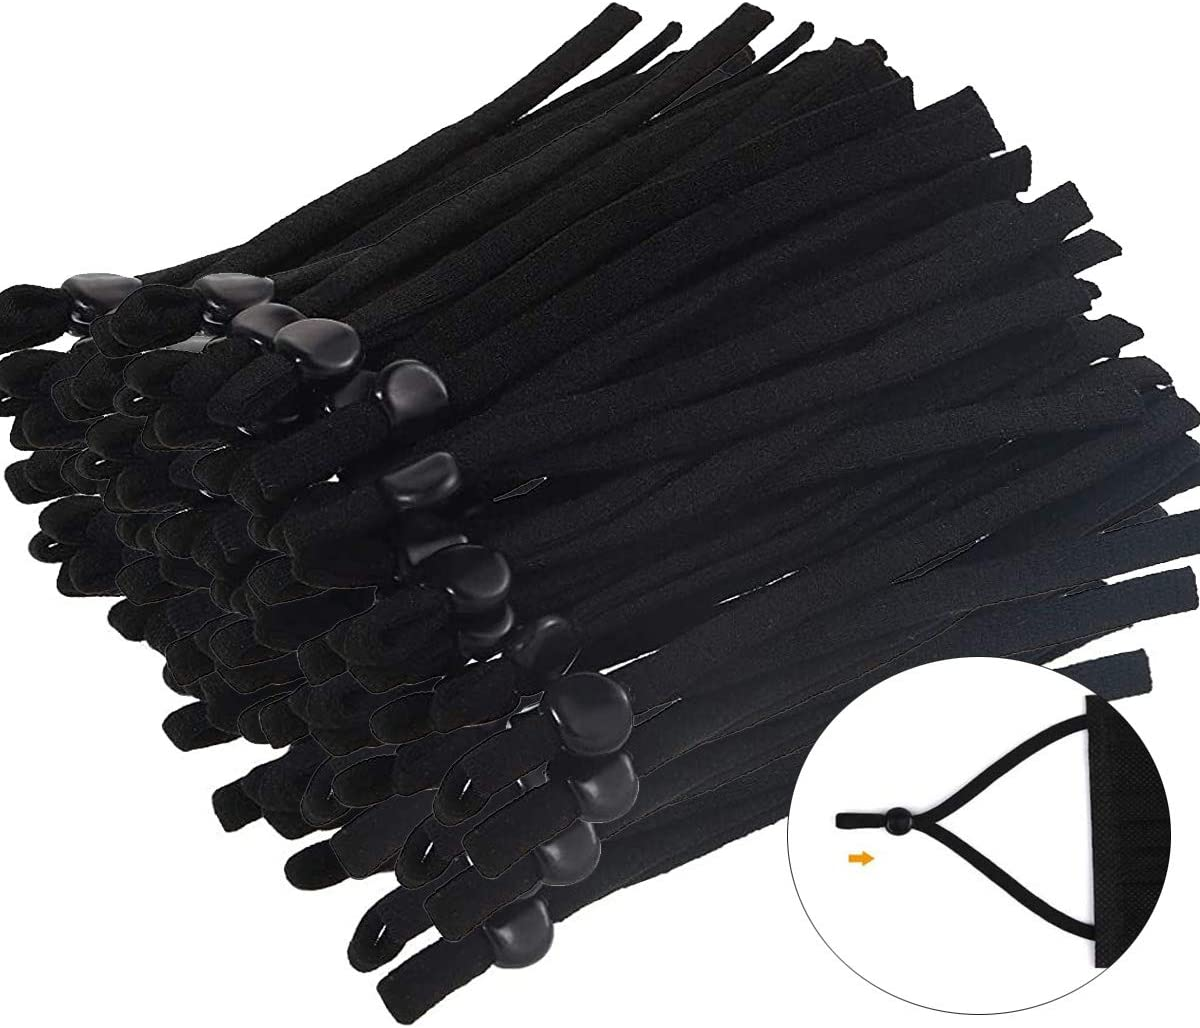 Elastic Bands 100 Pcs for Sewing Face Cover, 1/5 inch Black Cord with Adjustable Buckle, Soft and Stretchy Sewing Elastic String Comfortable, Suit for Kids and Adults